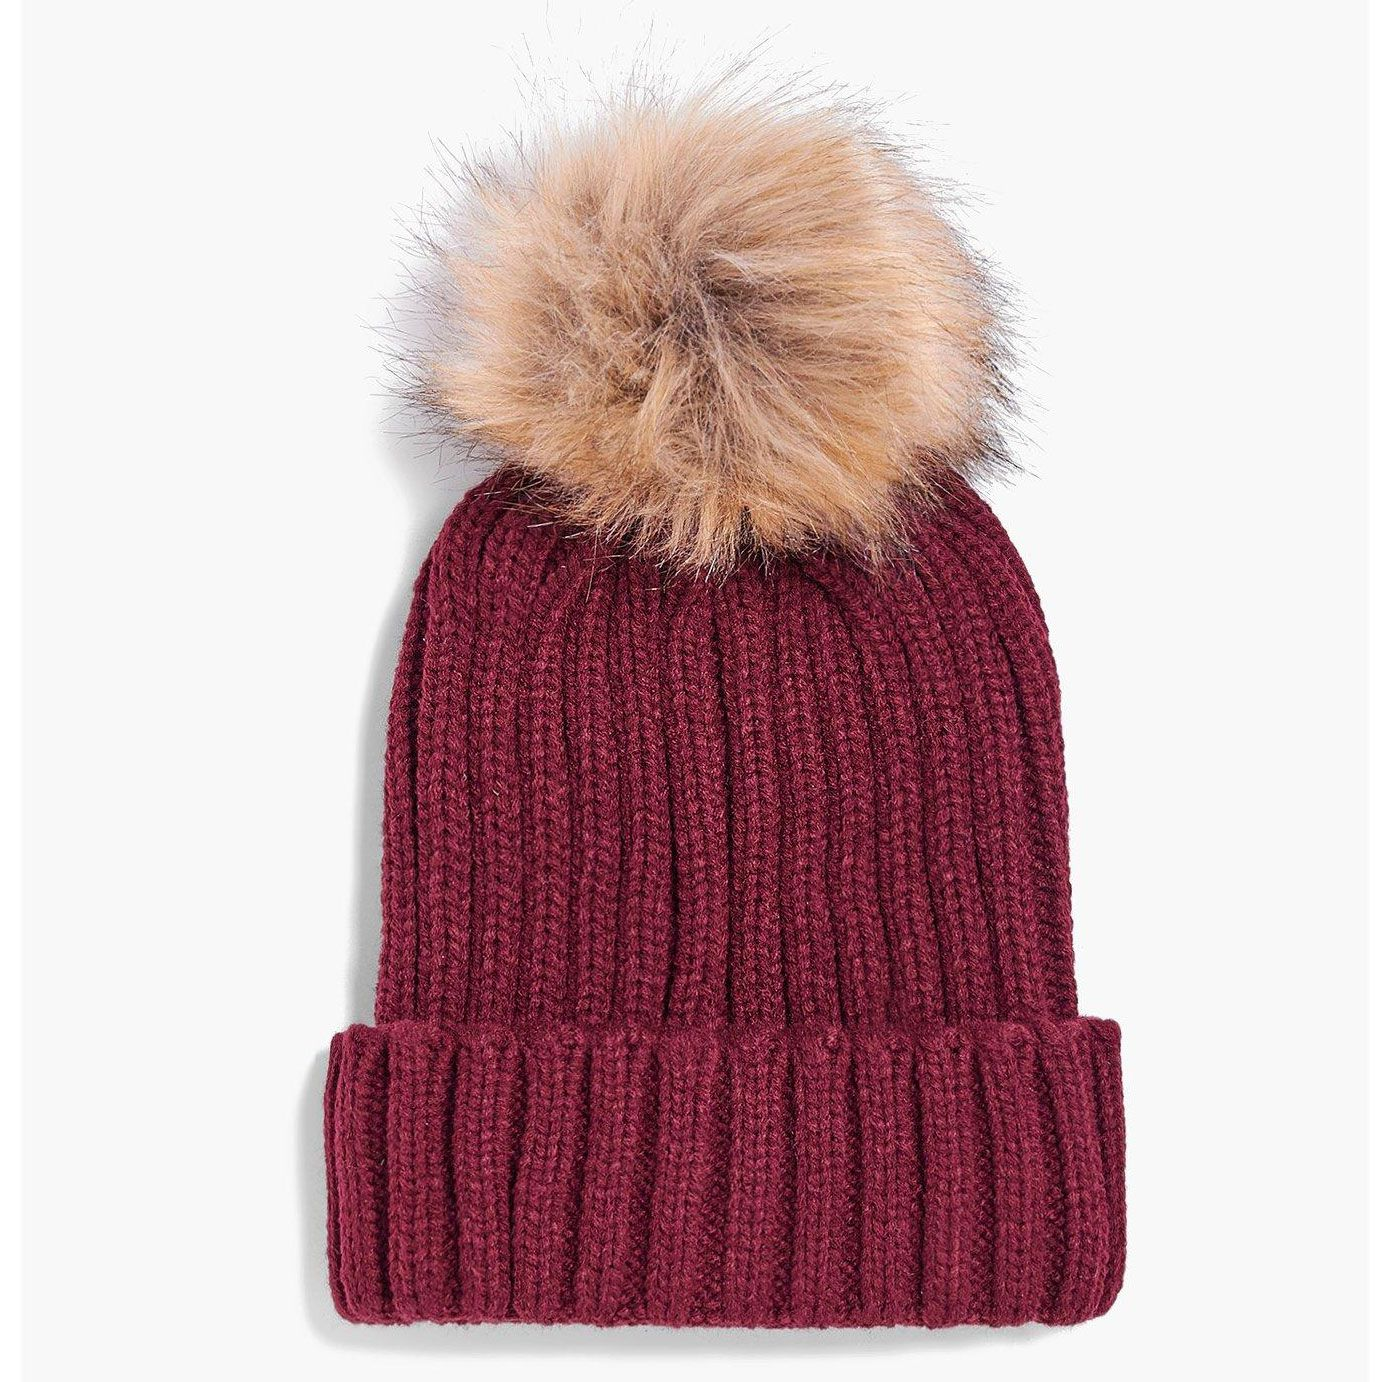 Cute Cold Weather Accessories That Wont Make You Look Like a Total Marshmellow